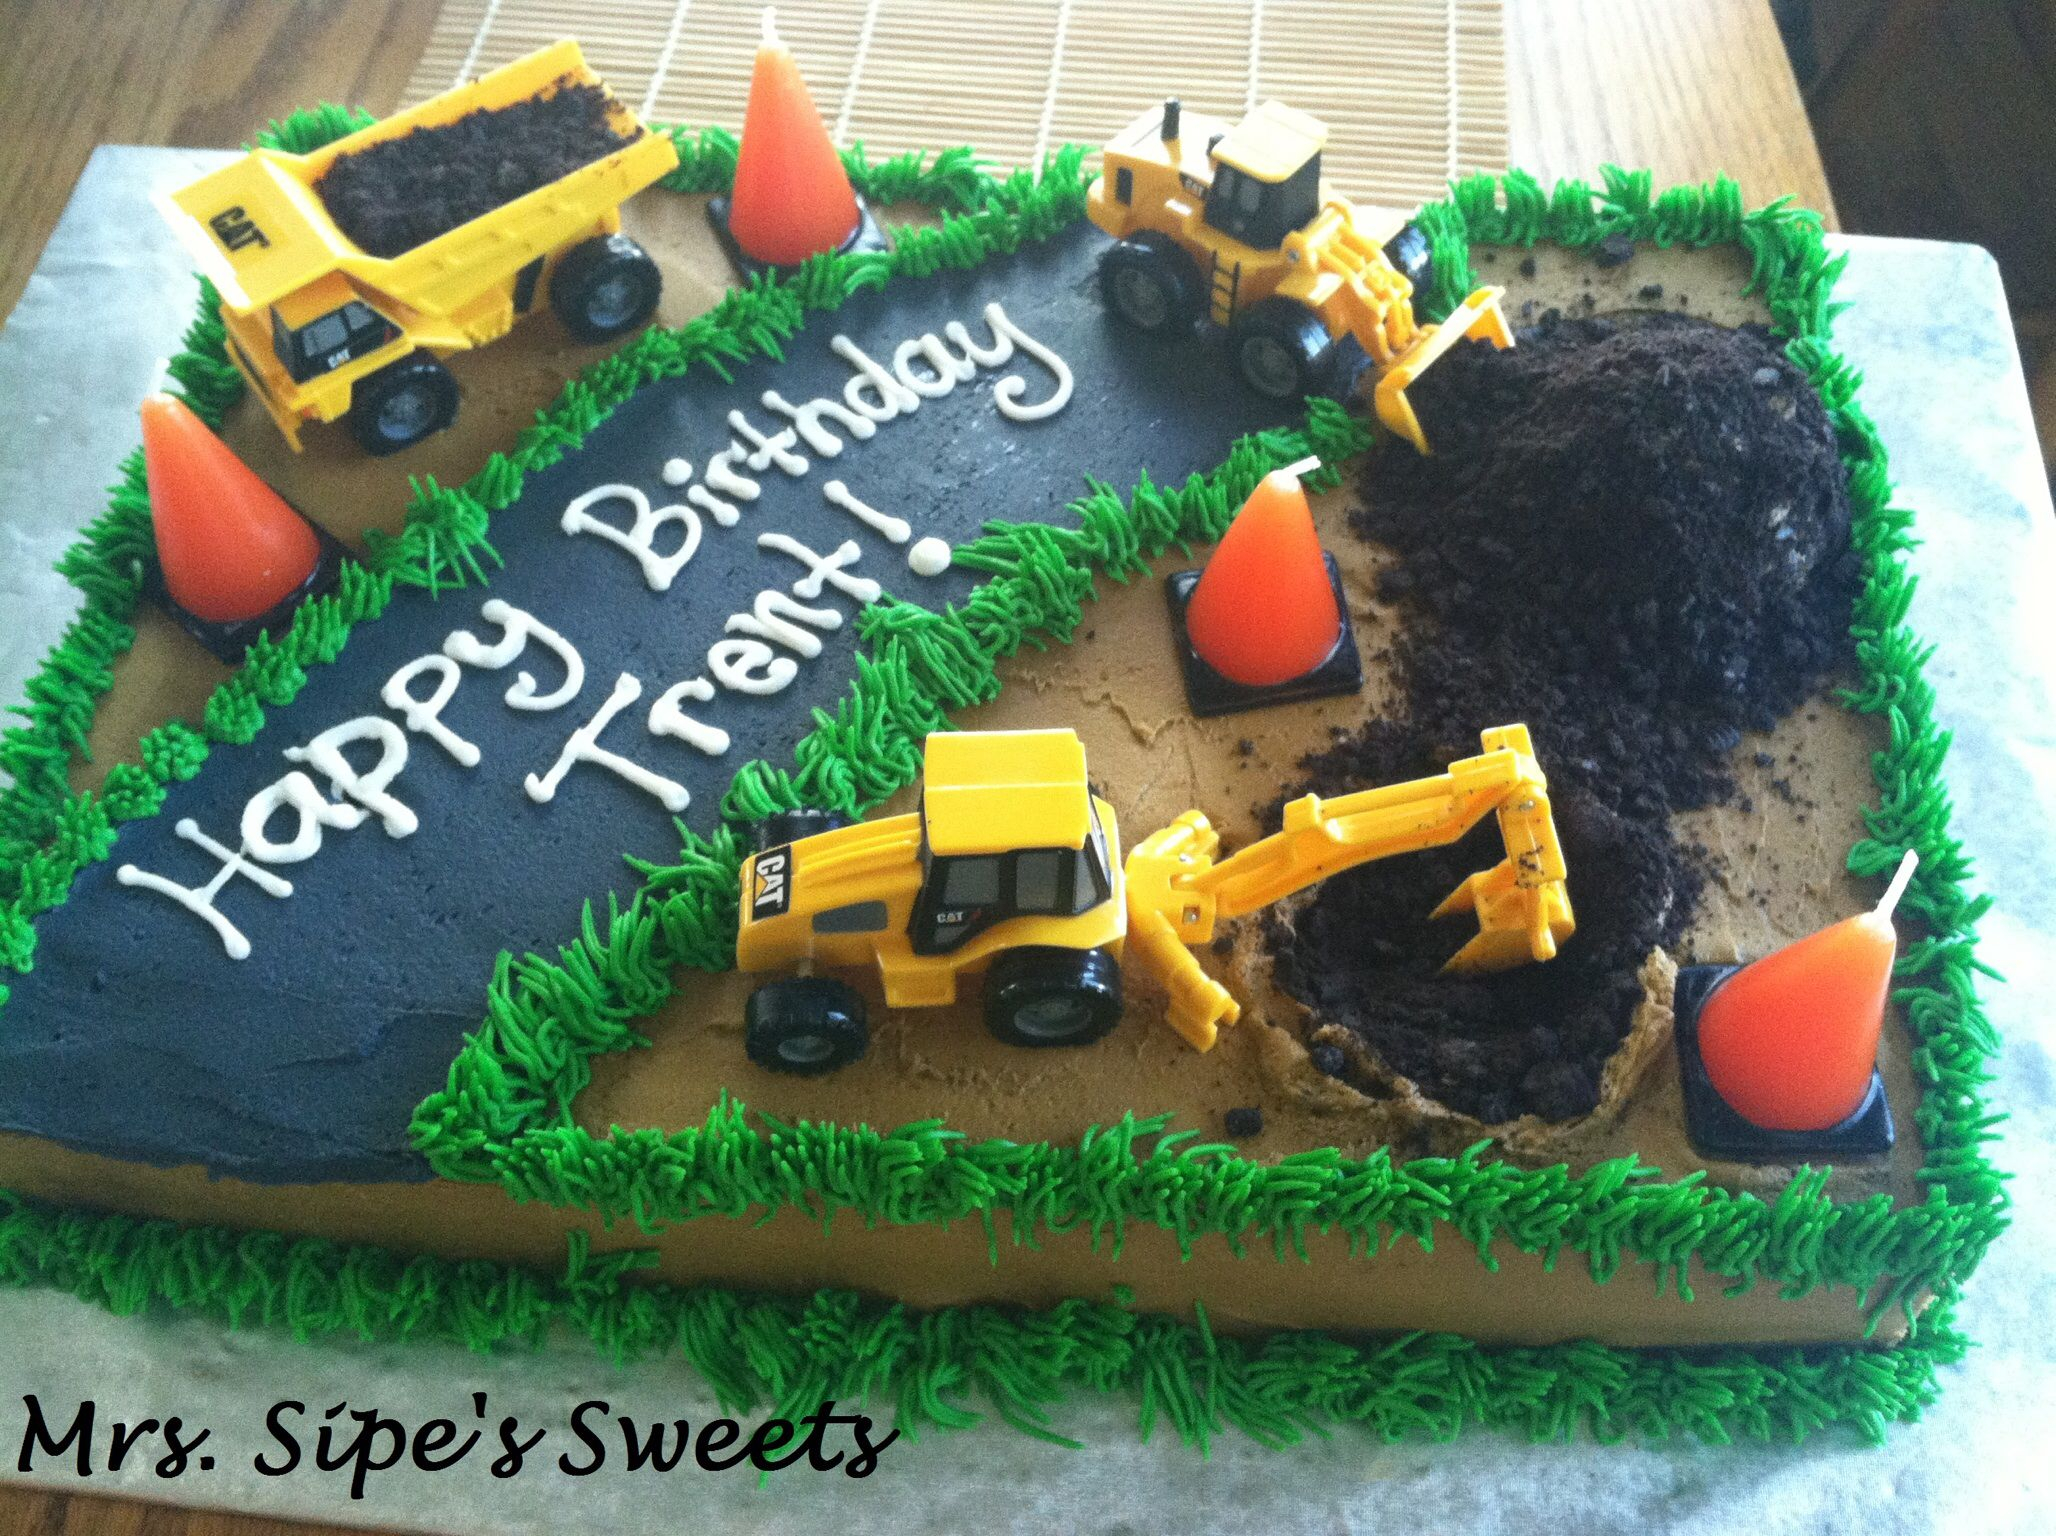 Construction Birthday Cakes Construction Birthday Cake Wyatts 2014 2nd Birthday Cake